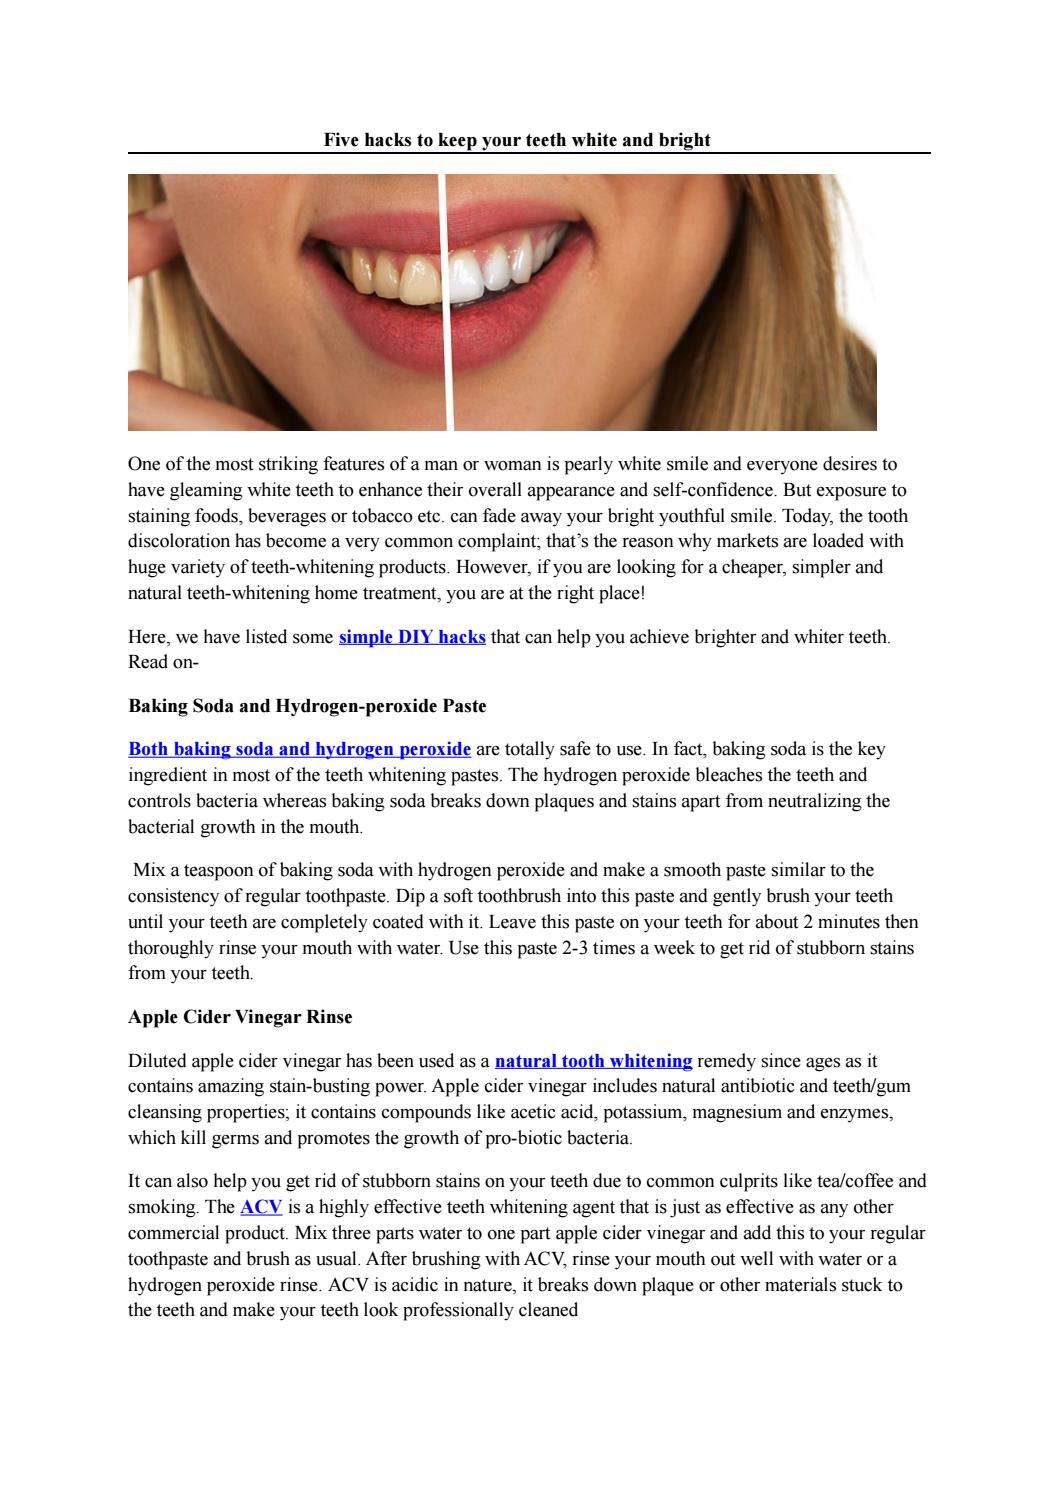 Five Hacks To Keep Your Teeth White And Bright Secdental By